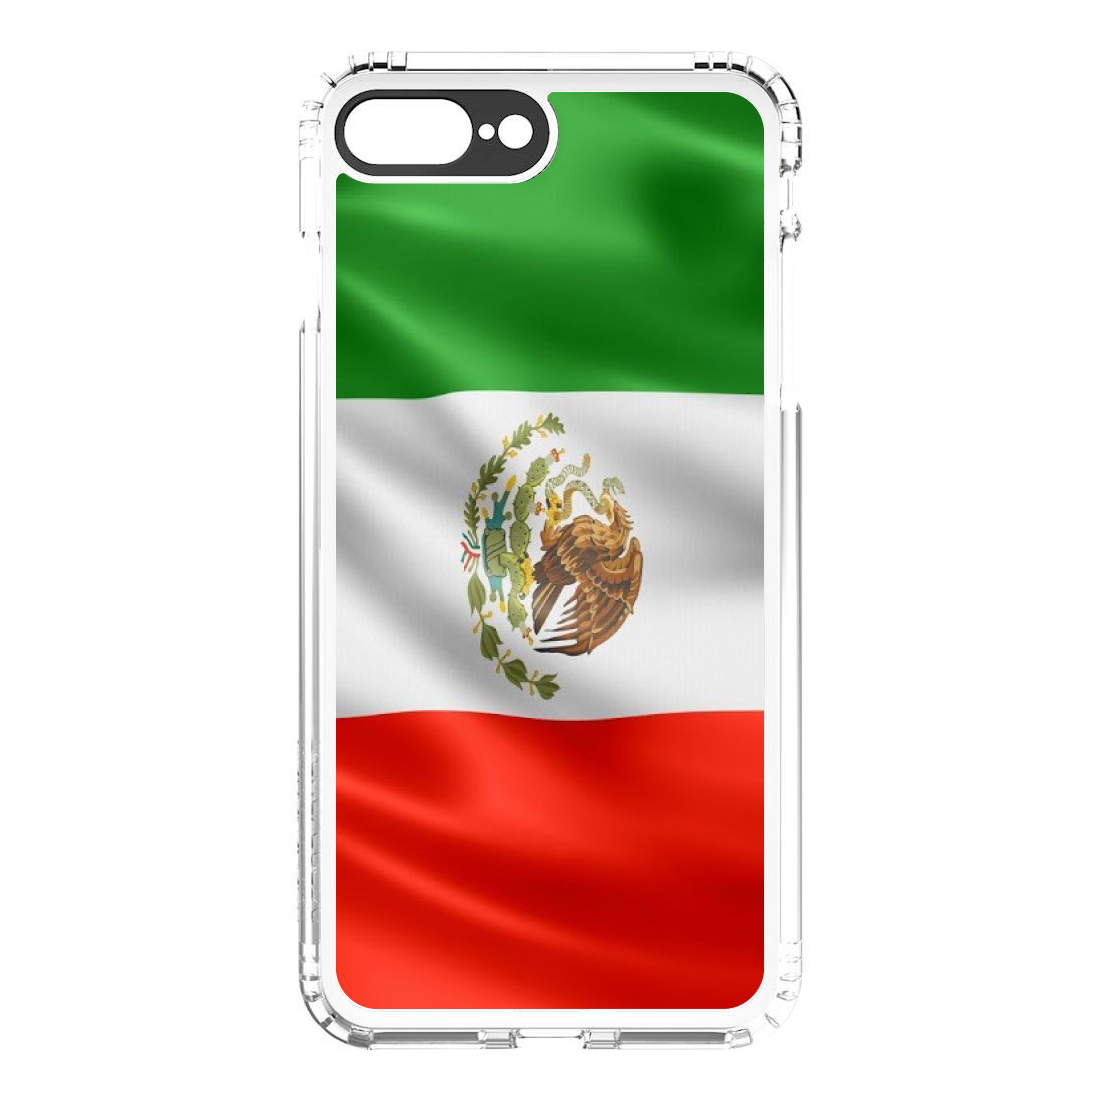 iPhone 7 Plus iPhone 8 Plus SaharaCase ® Clear Shockproof Custom Case By DistinctInk ®- Protective Kit & ZeroDamage Screen Protector - Red White Green Mexican Flag Mexico